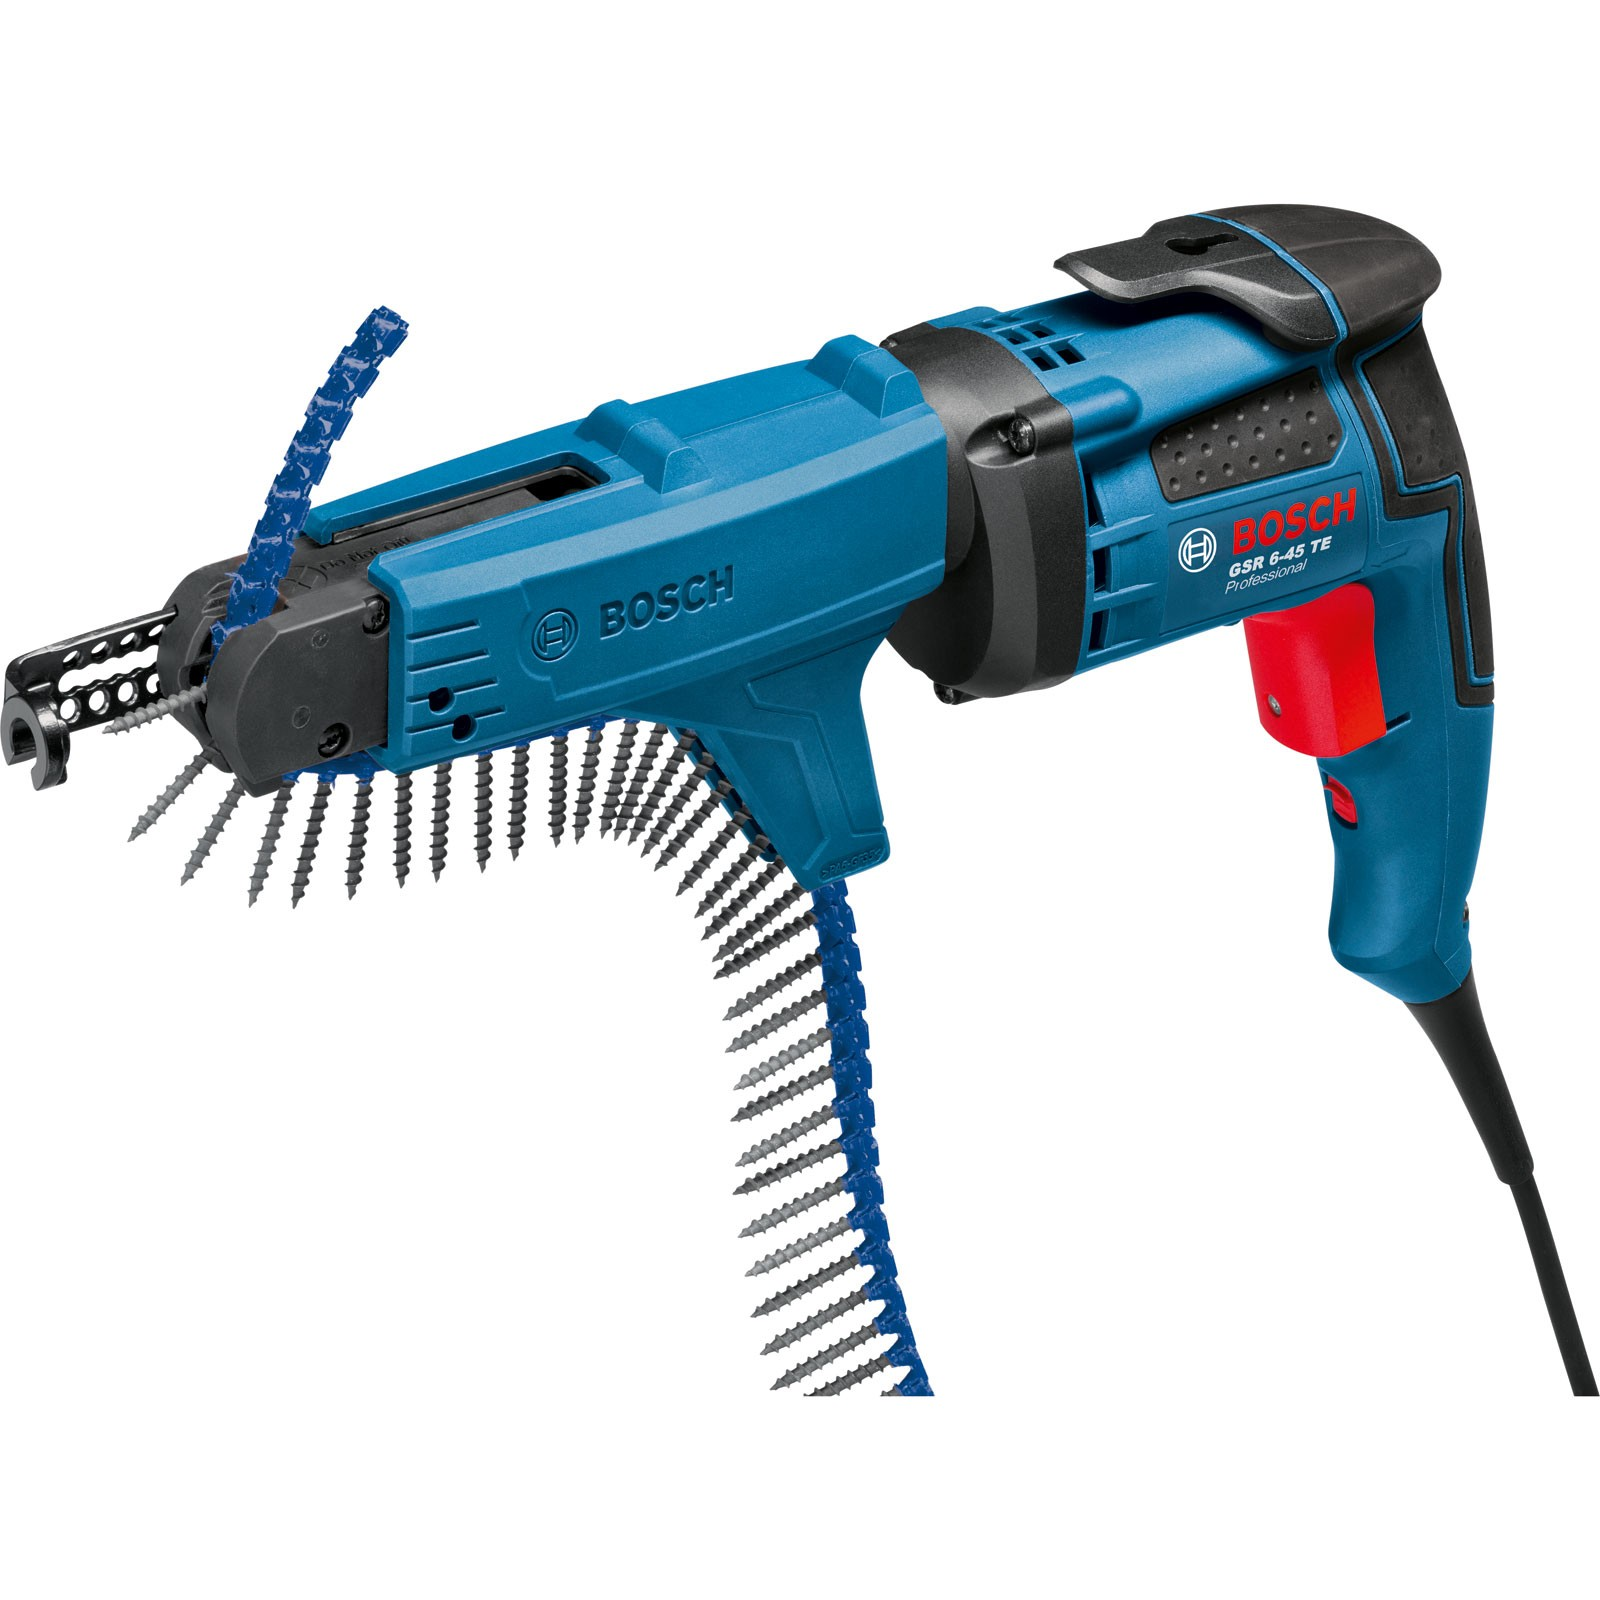 Bosch GSR 6-45 TE + MA 55 Professional Drywall Screwdriver & Adapter in L-Boxx